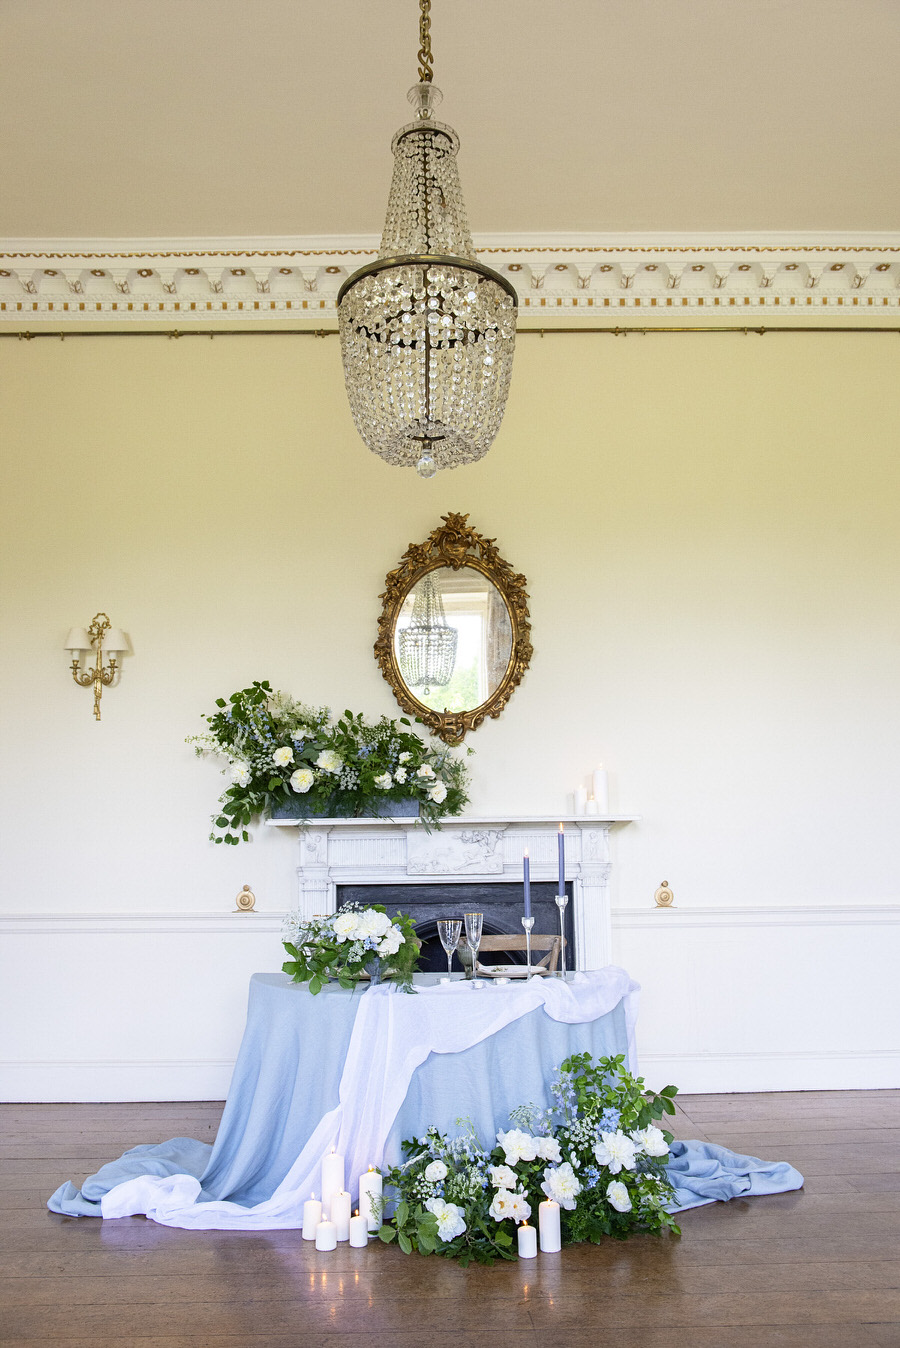 Pynes House wedding styling ideas with Ailsa Munro, Sarah Shuttle and Lottie Ettling PHotography (28)